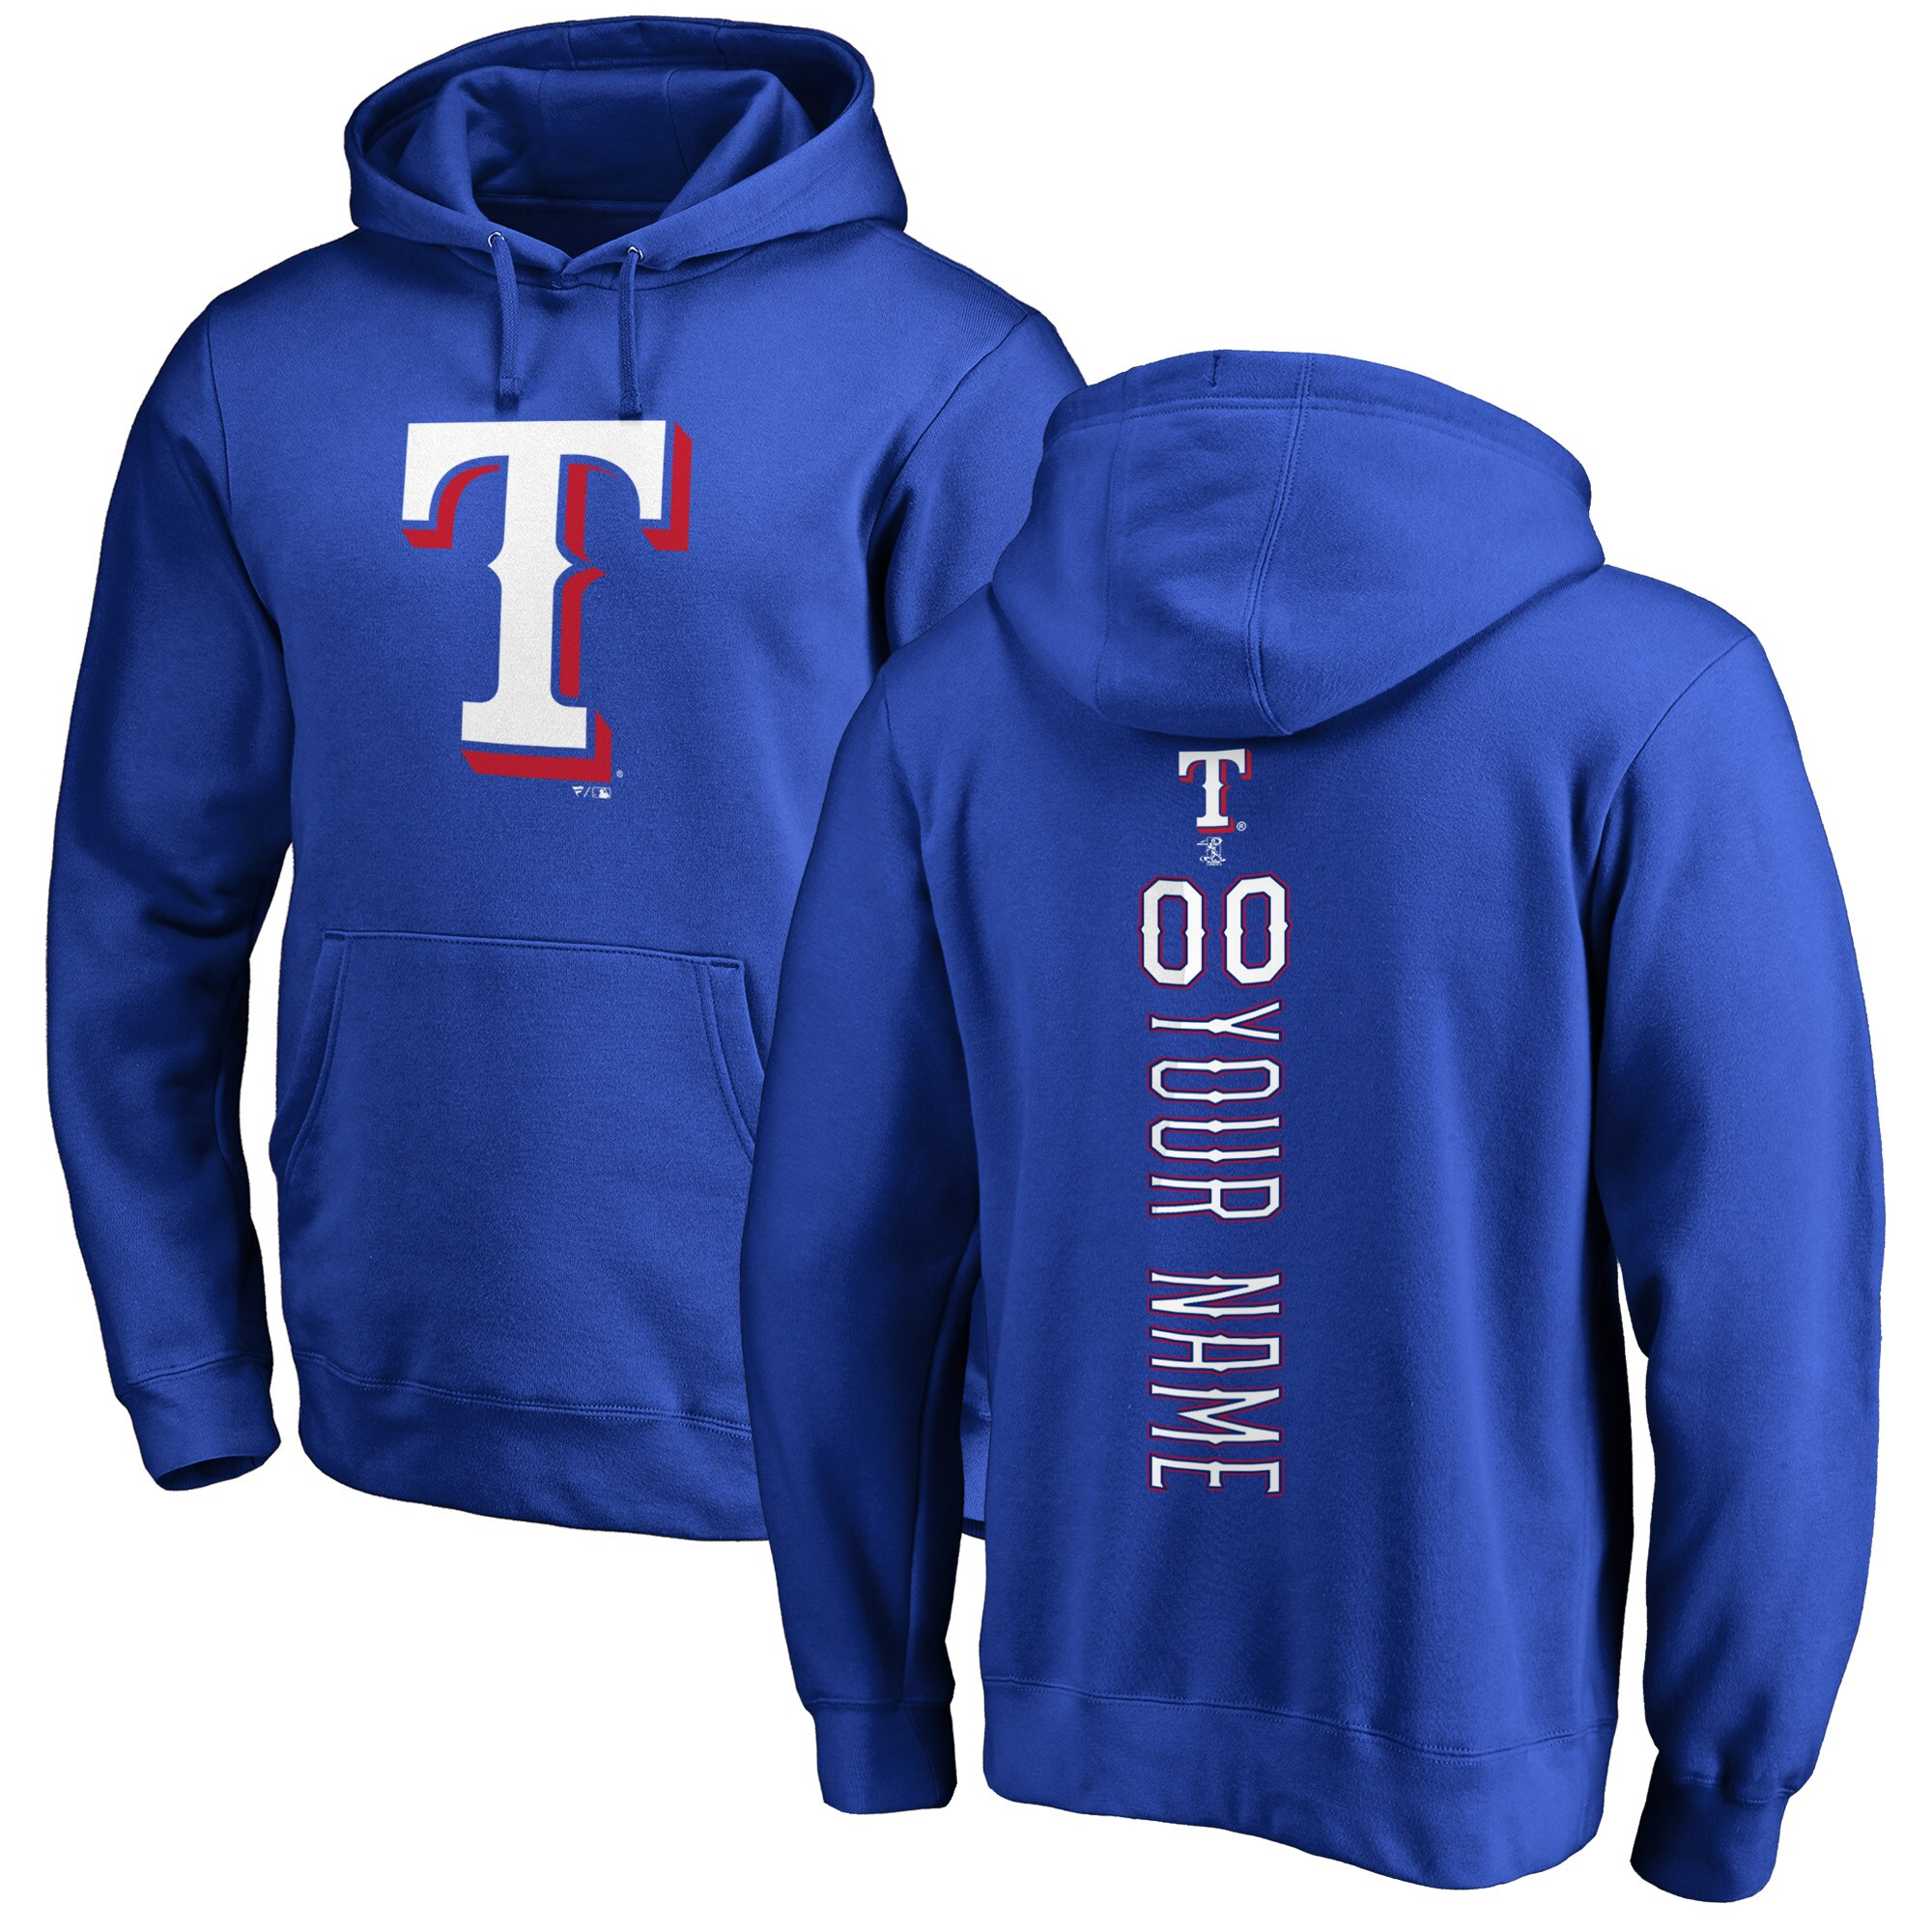 Texas Rangers Fanatics Branded Personalized Playmaker Pullover Hoodie - Royal